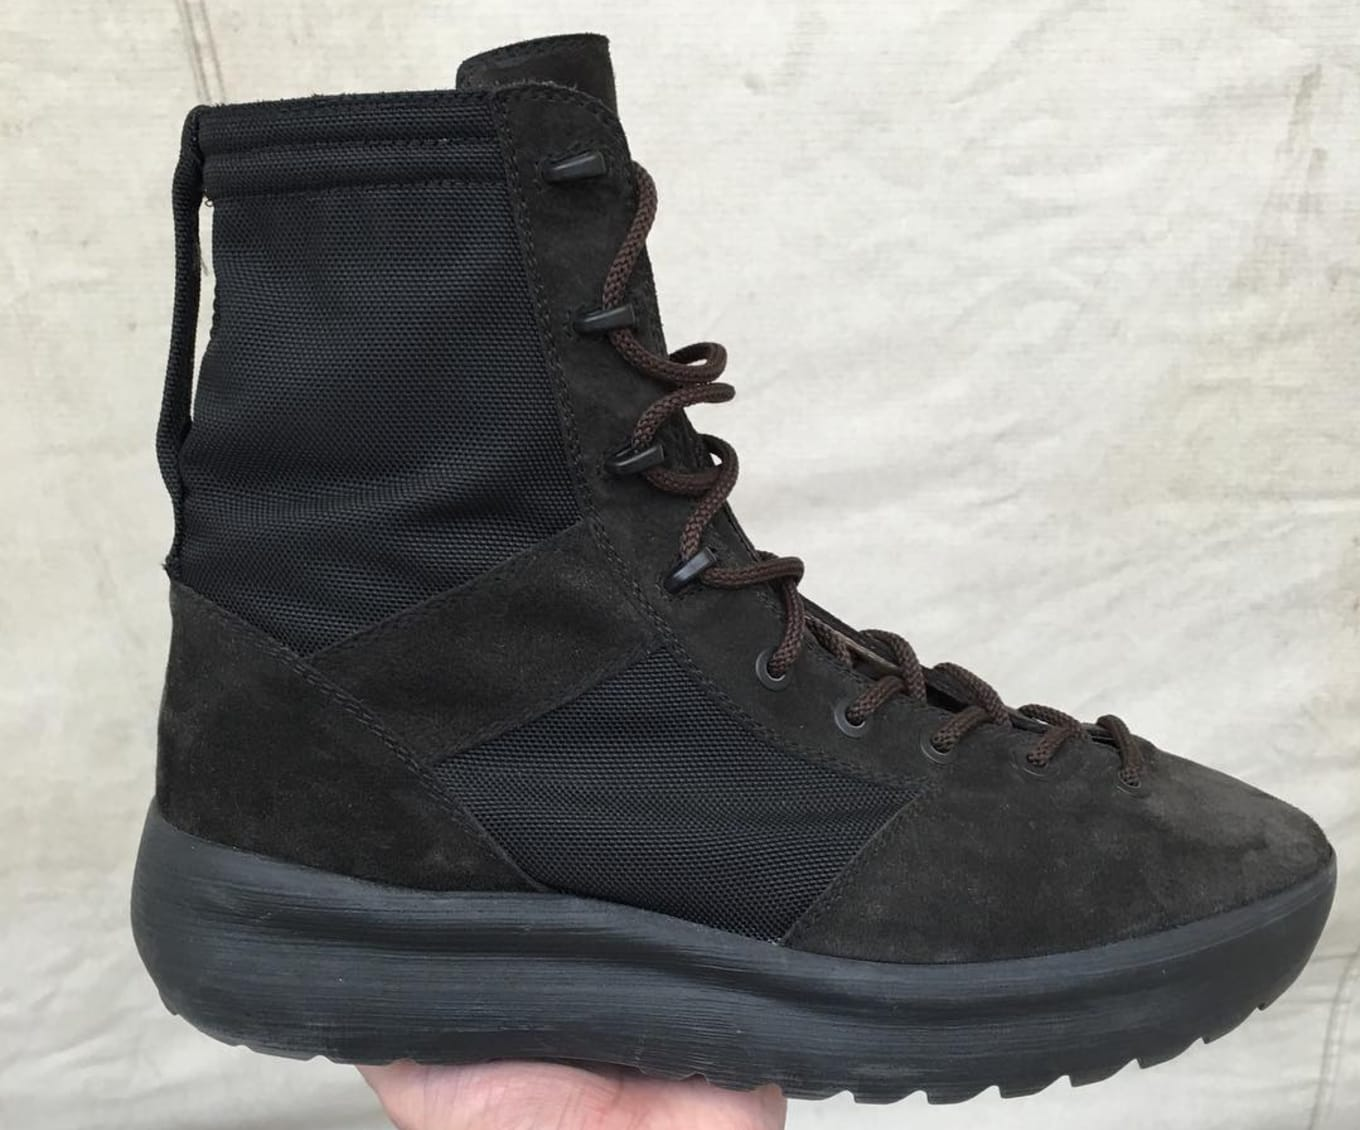 5ae96dca0 adidas Yeezy Season 3 Military Boot